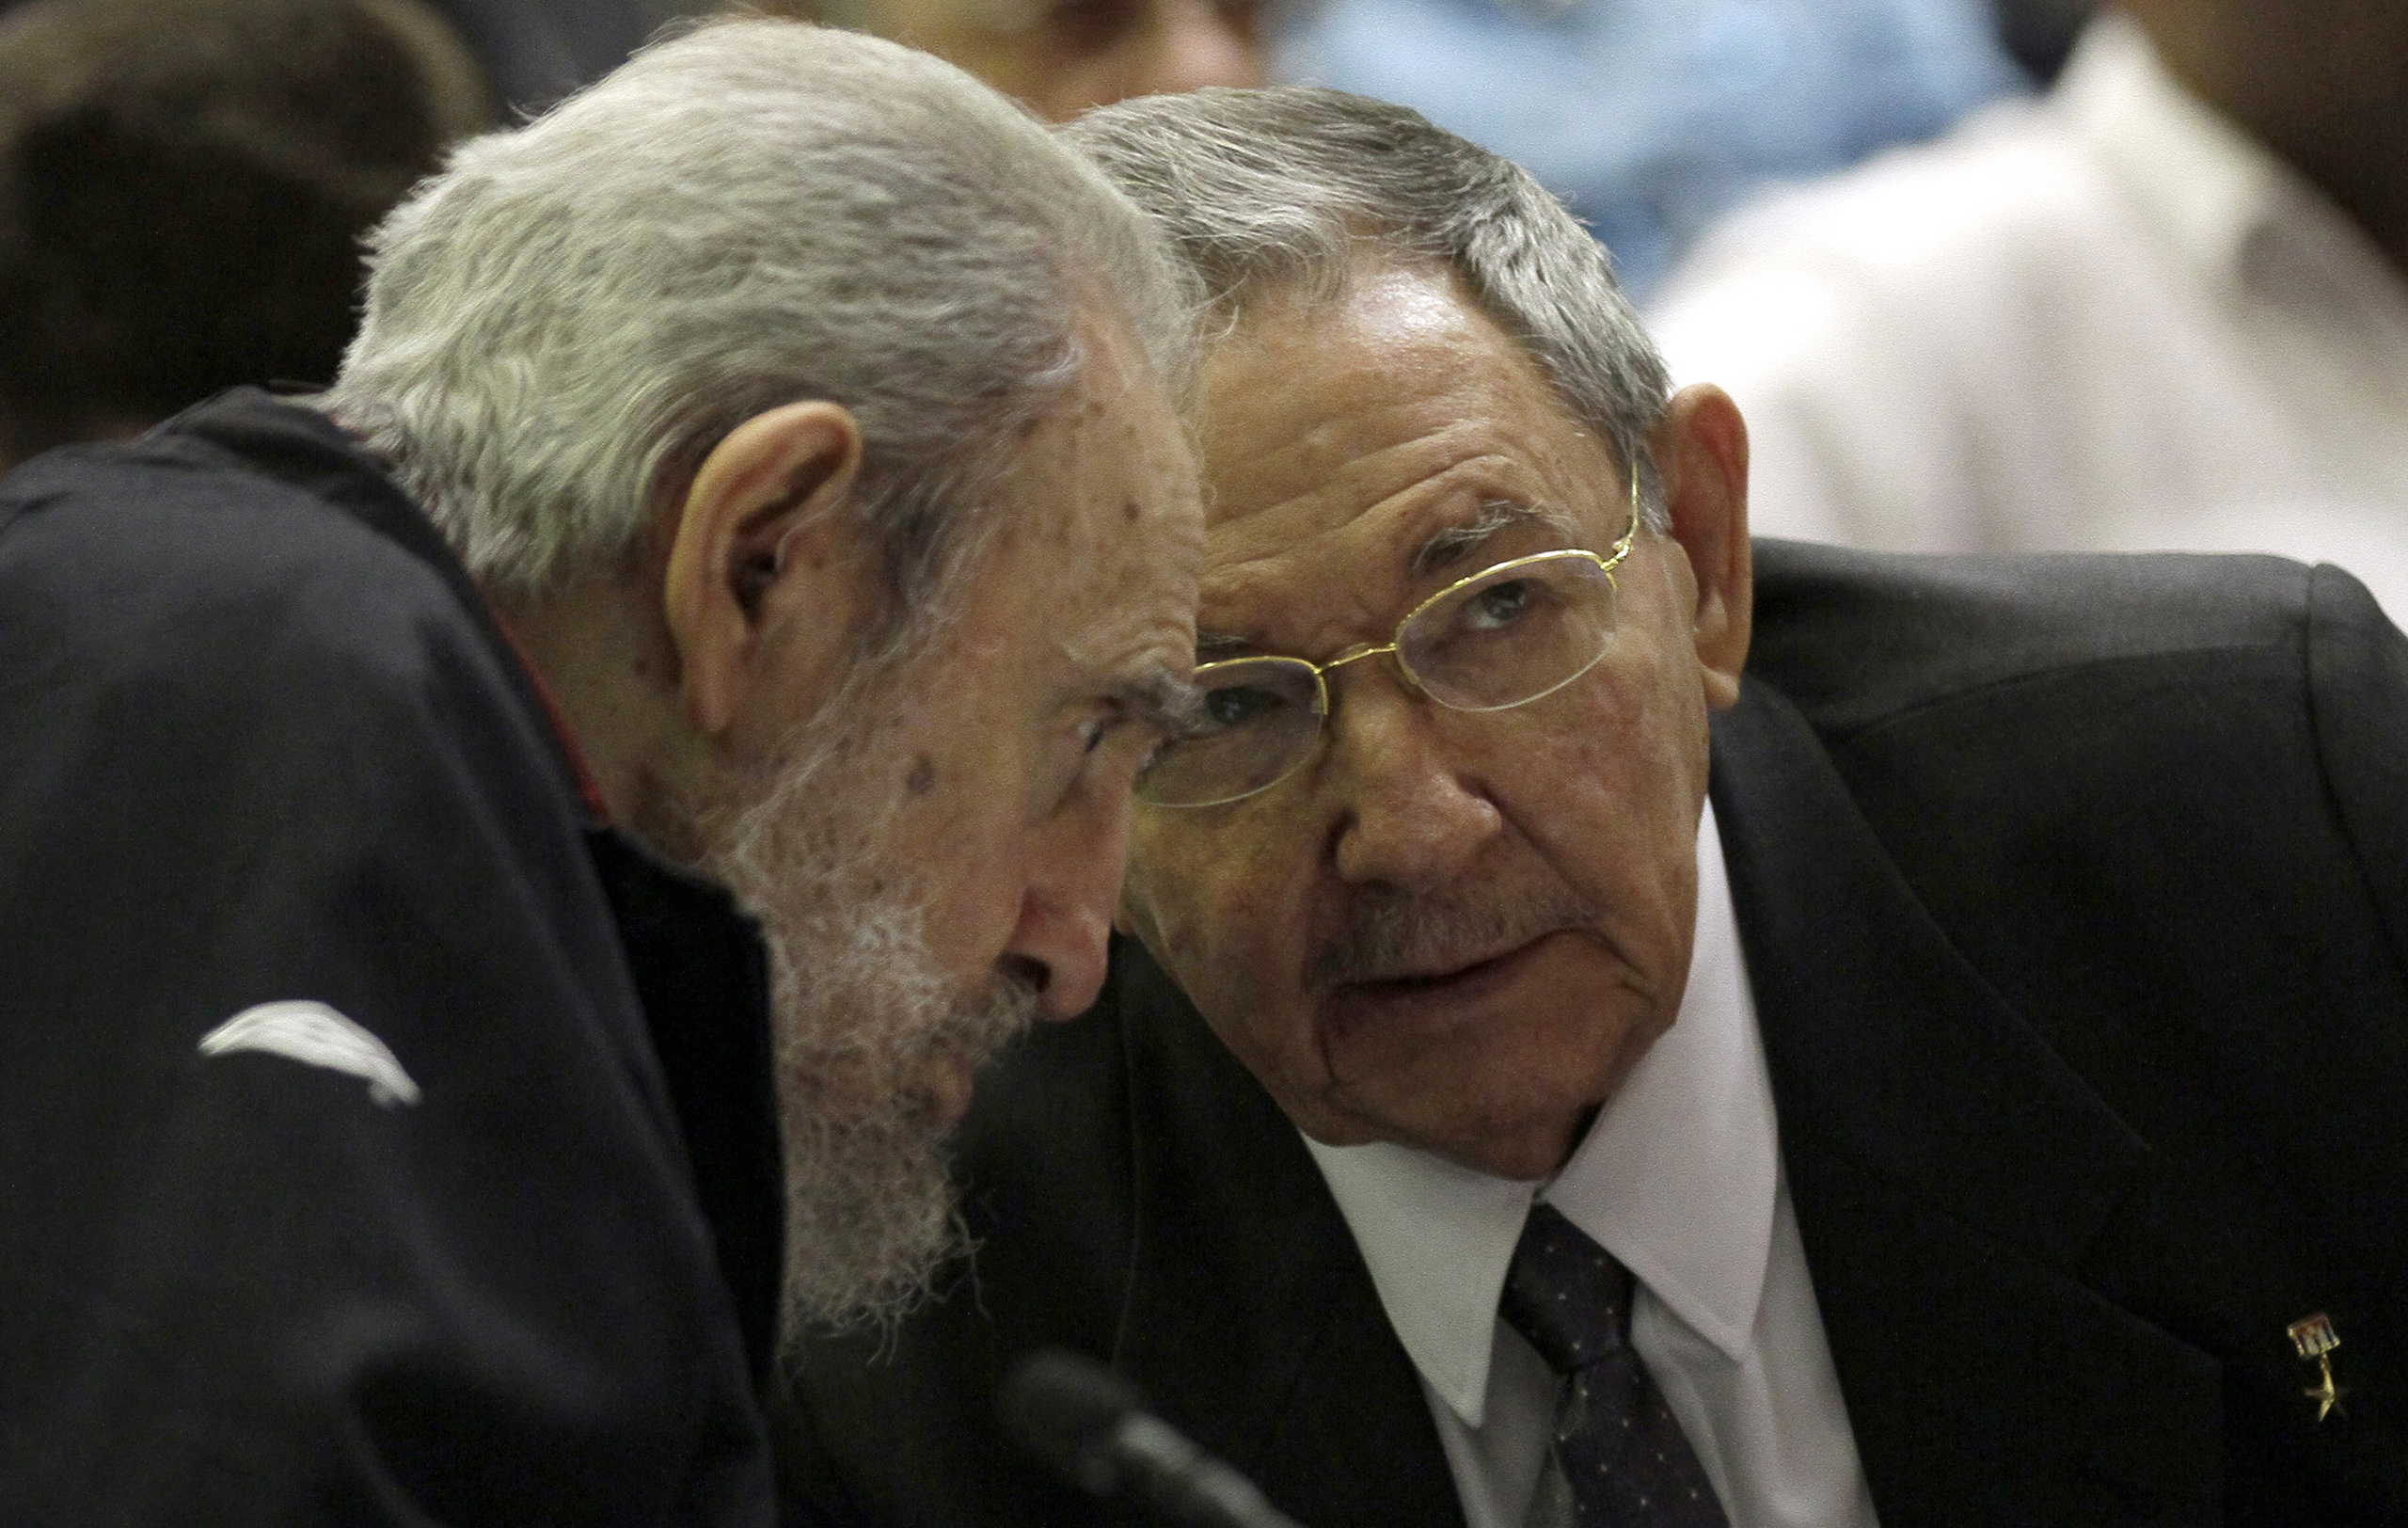 Cuban President Raul Castro speaks with his brother, Fidel Castro, during the opening session of the National Assembly in Havana on Feb. 24, 2012. Raul Castro was named to a new five-year-term as president.